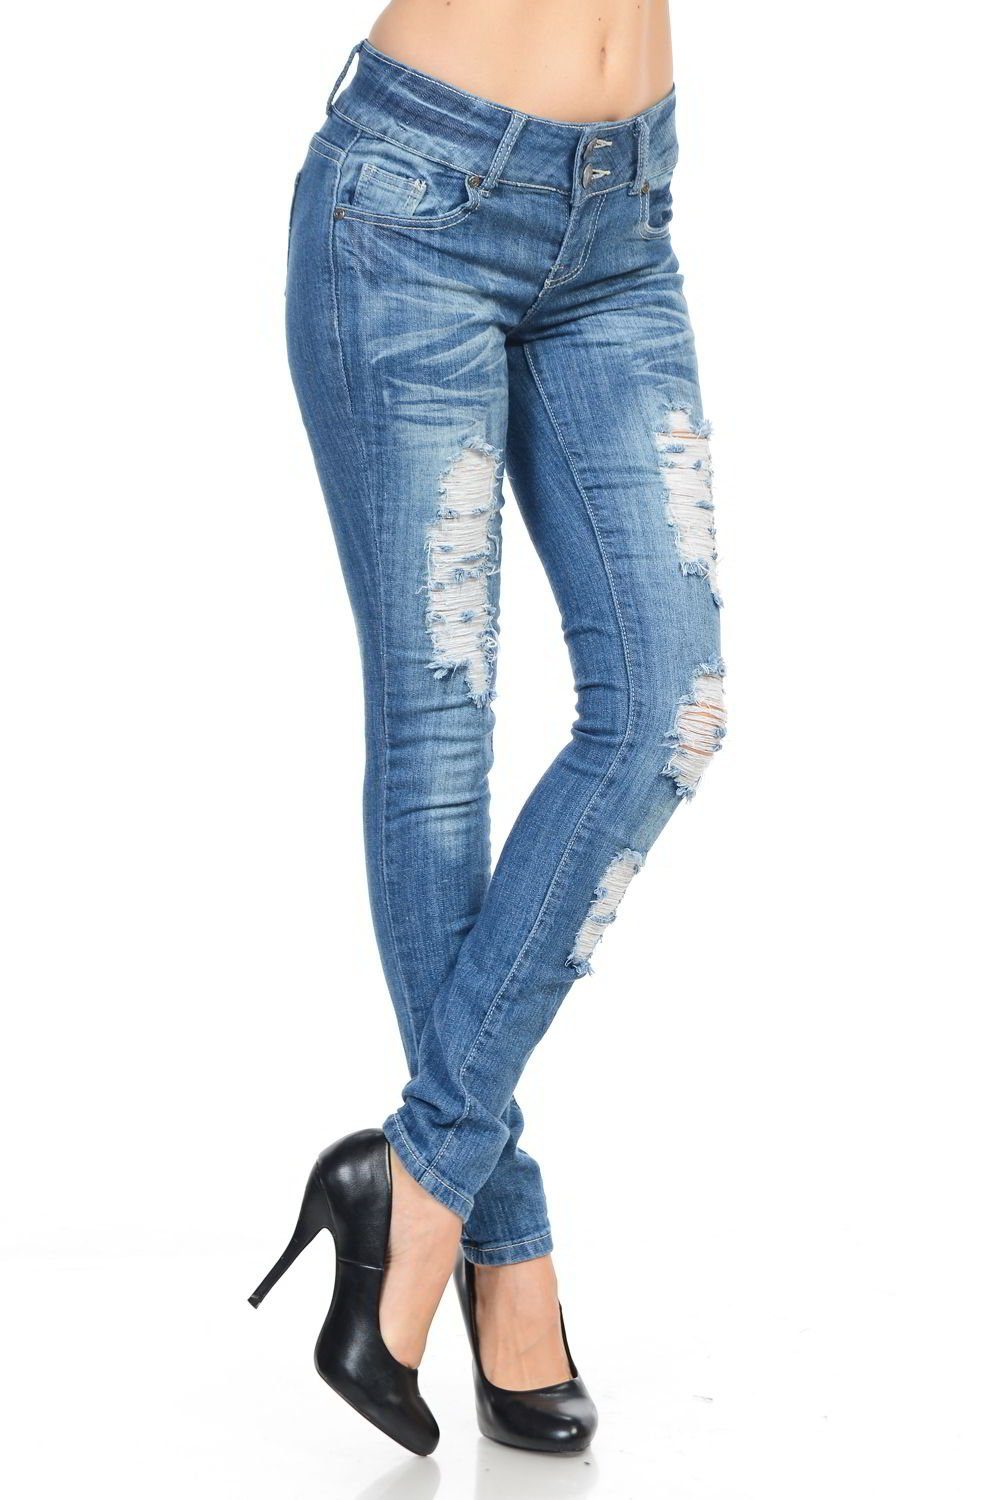 Sweet Look Premium Edition Women's Jeans - High Waist - Style N426H - Size 17